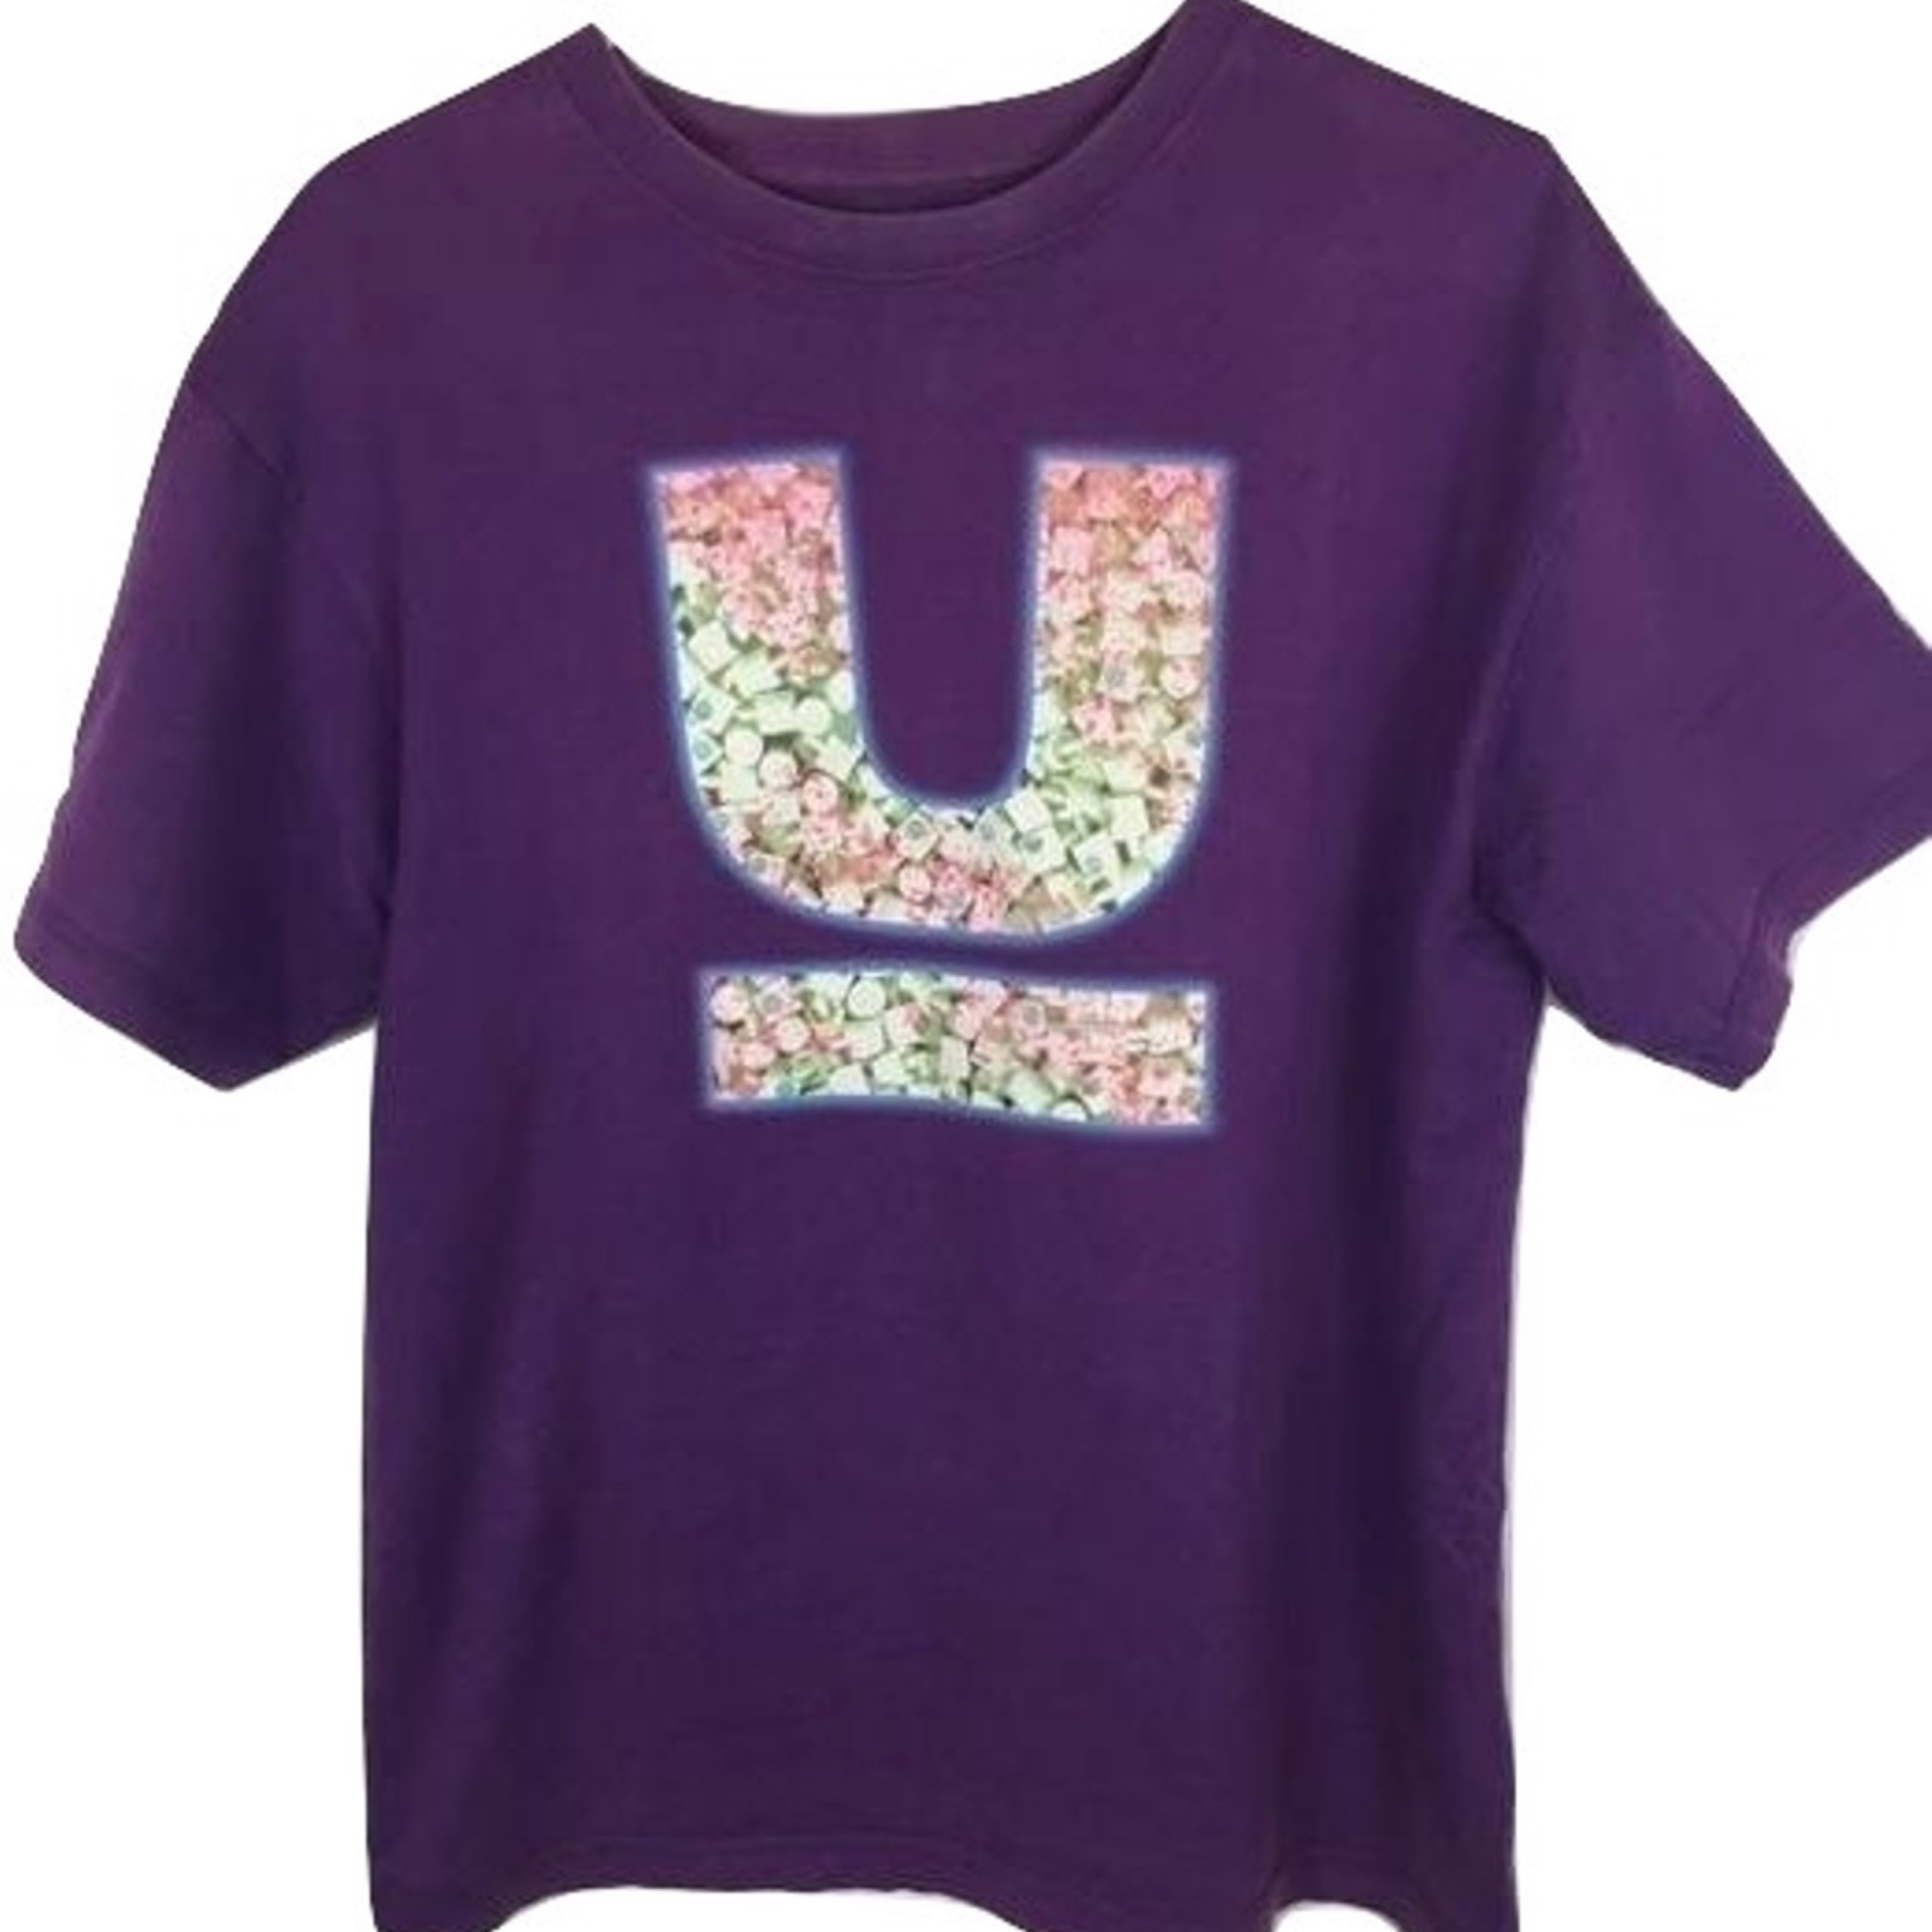 Undercover Uc Logo T Shirt Medium